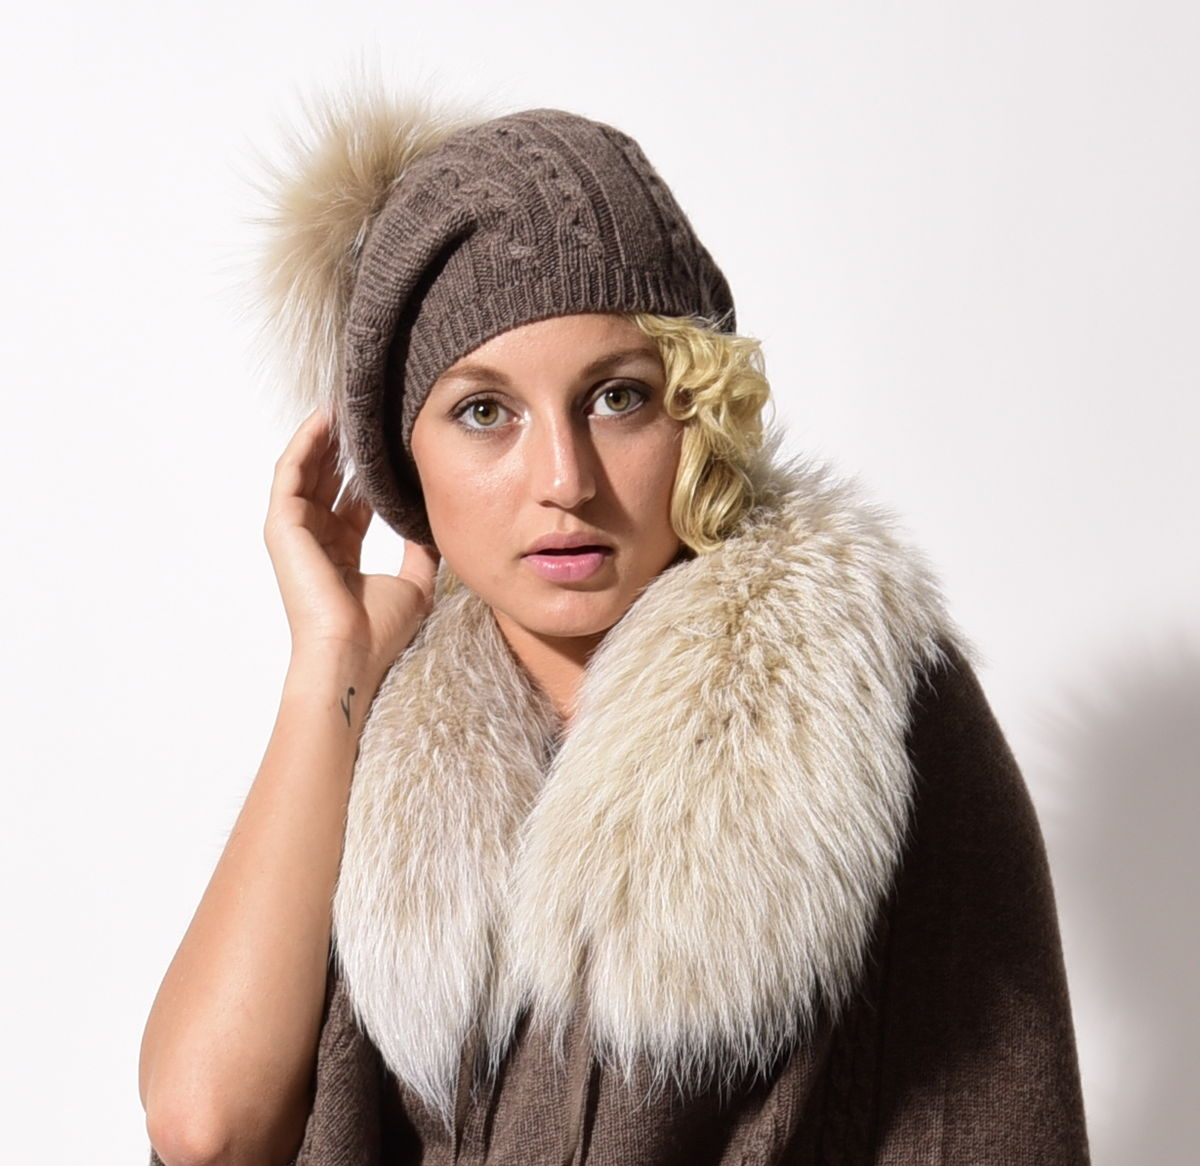 Cable Beret with Fur Puff - Legno - product images  of